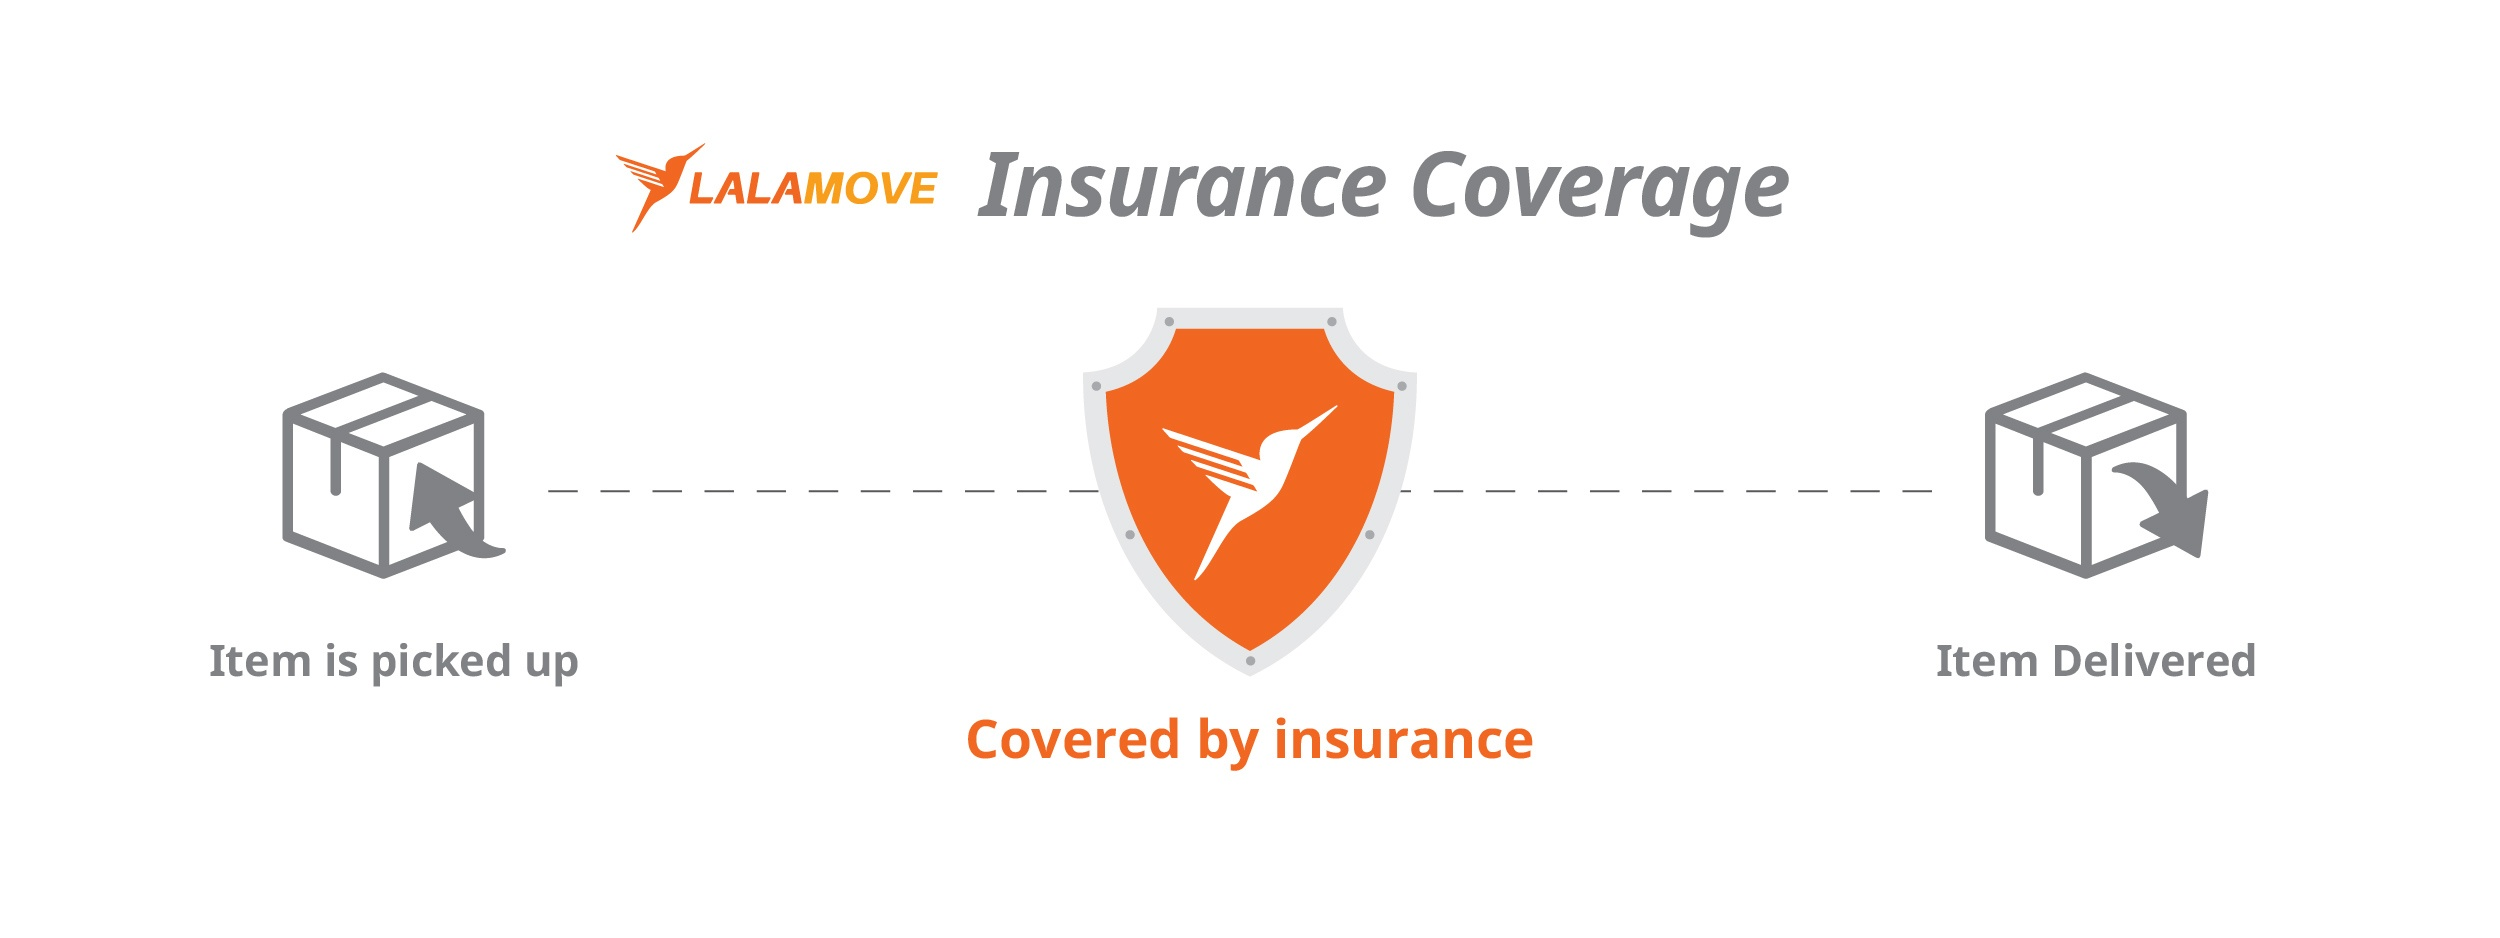 Lalamove goods insurance covered